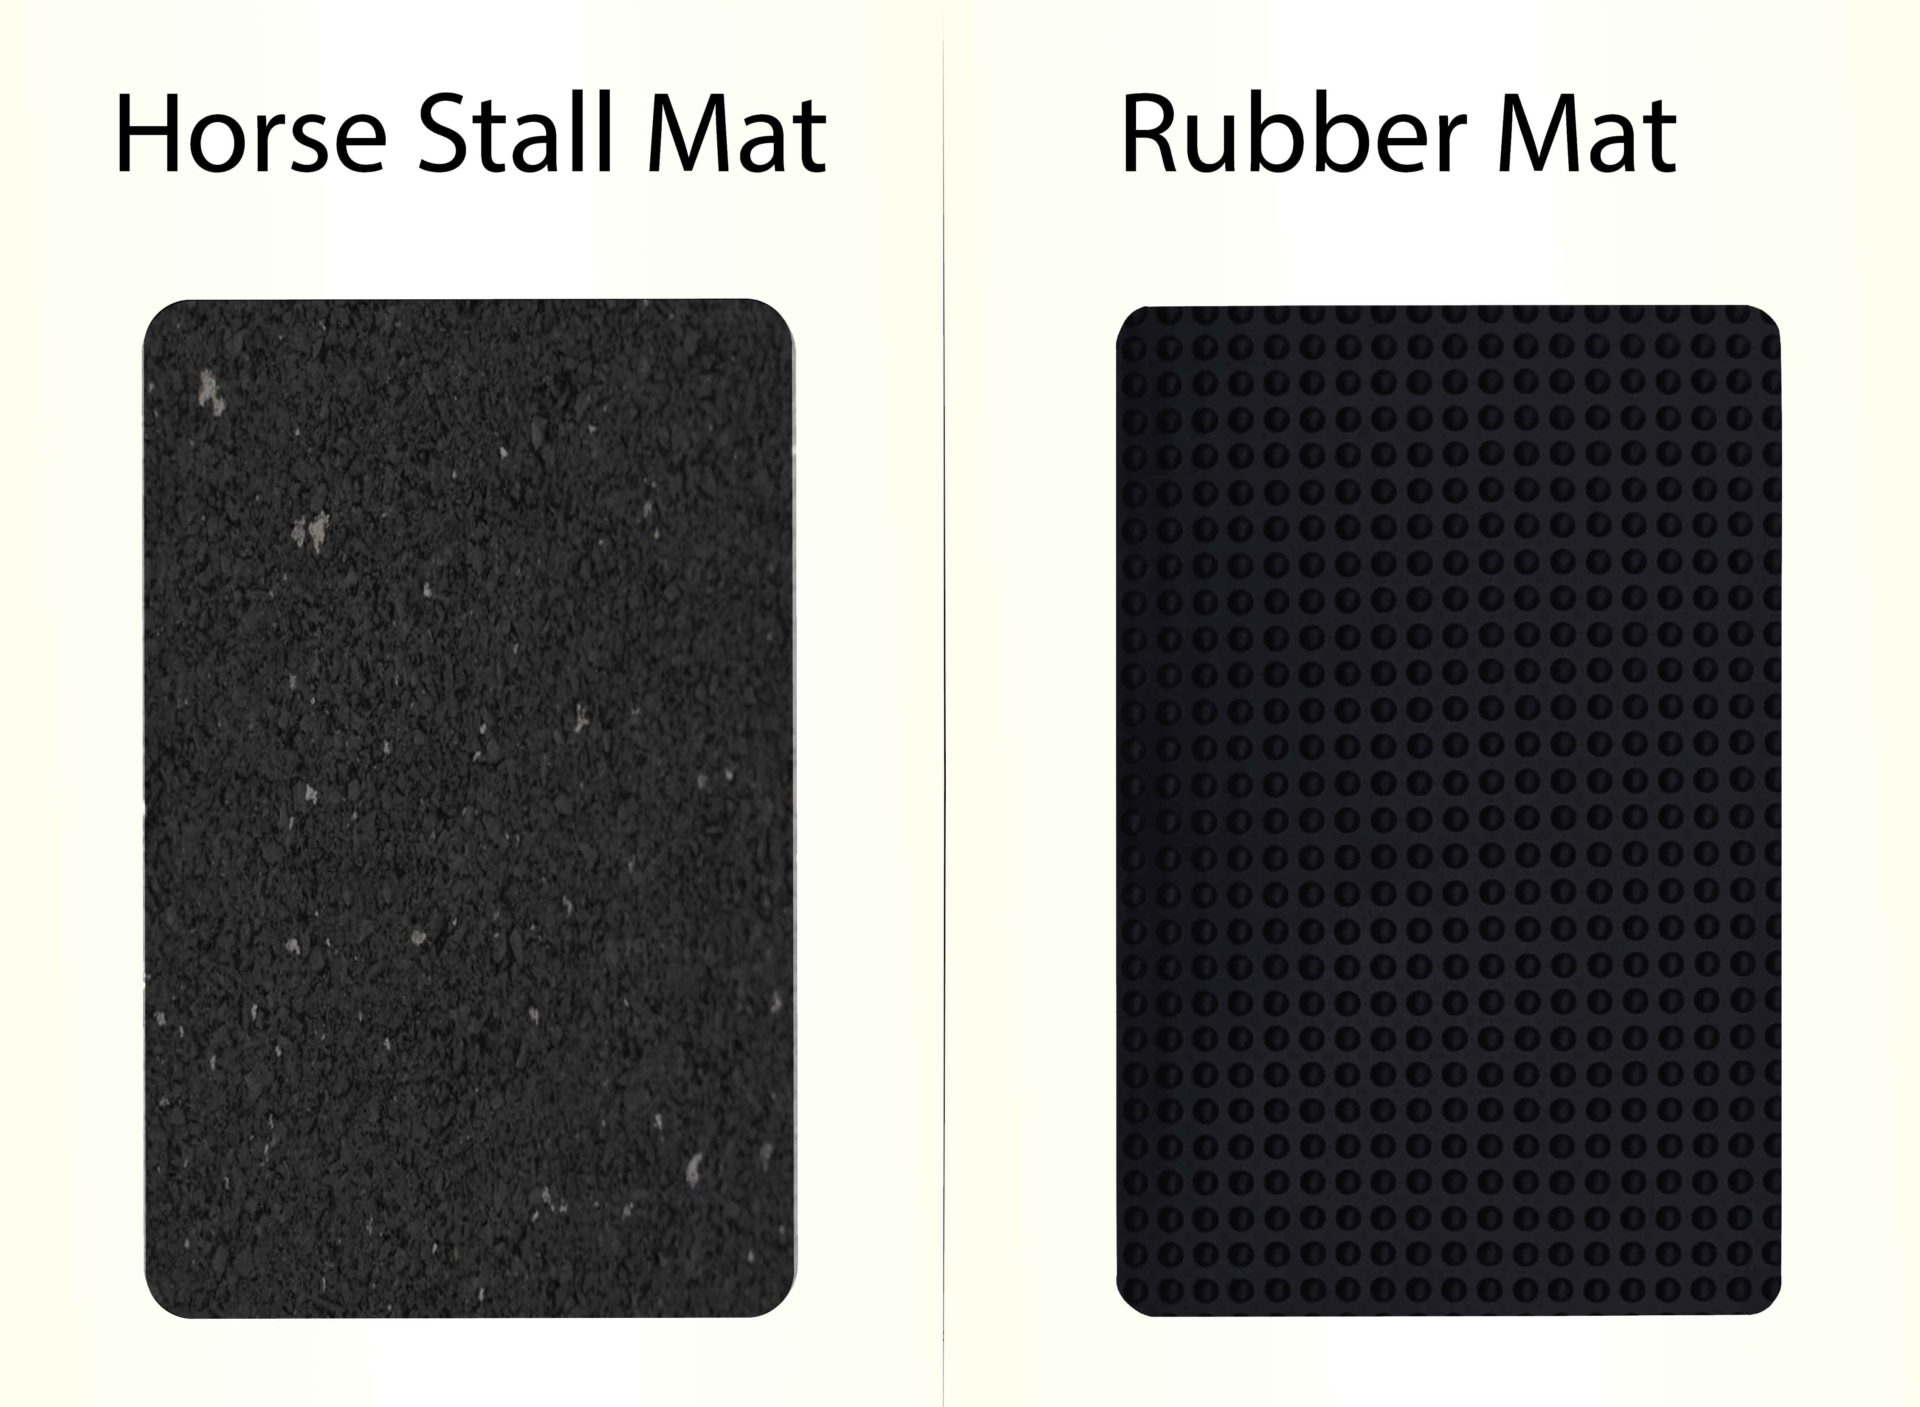 Choose rubber blend or horse stall mats depending on your budget.